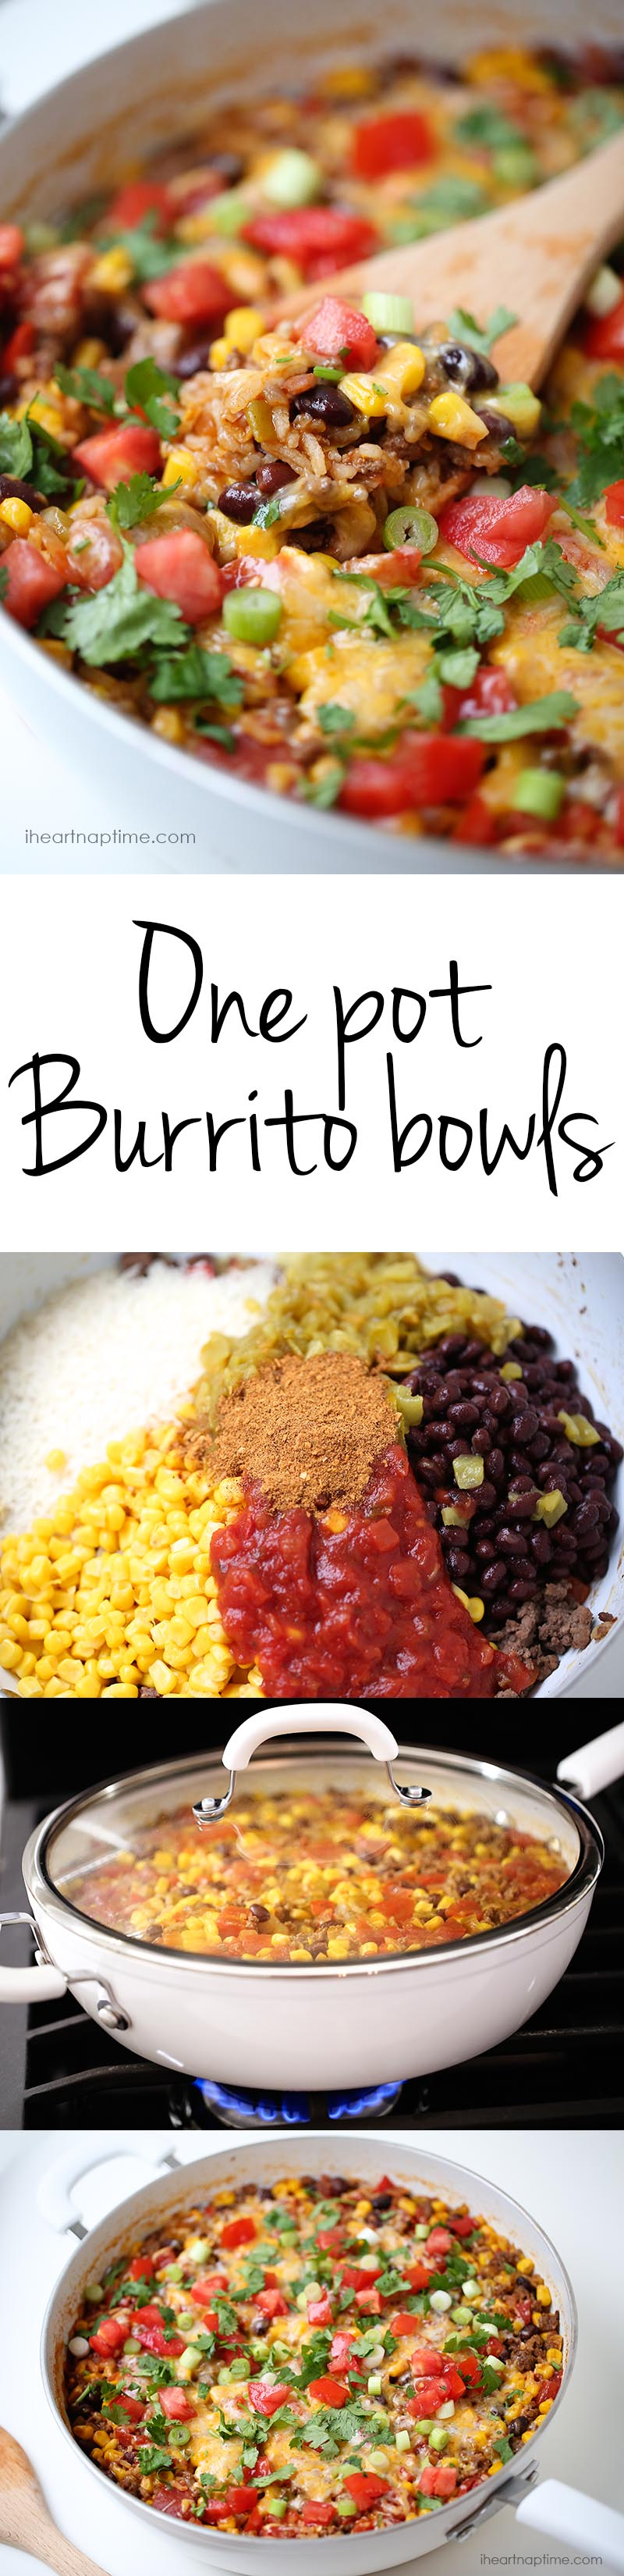 One-pot-burrito-bowls-recipe